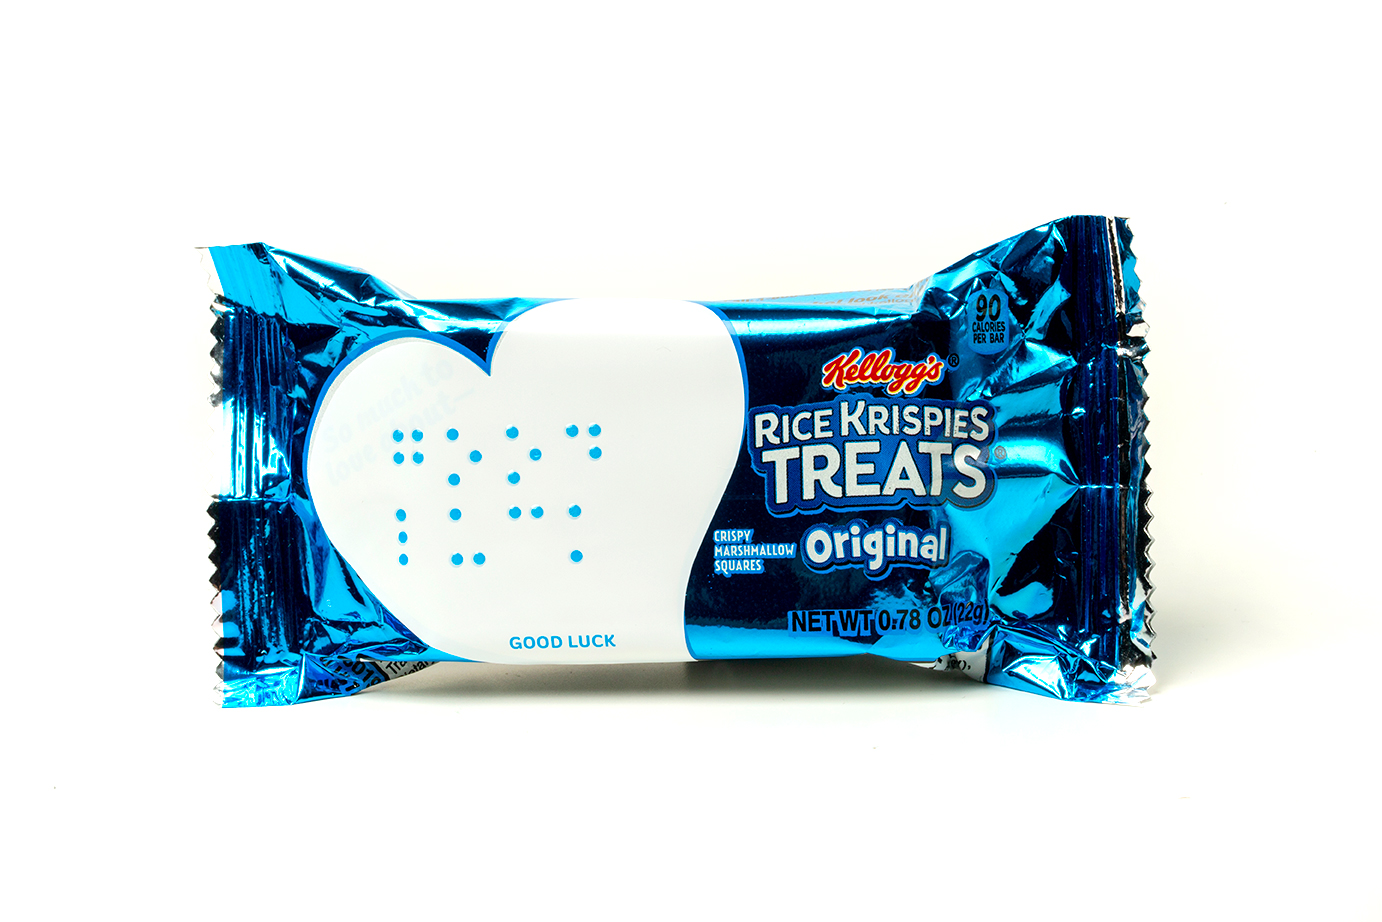 Parents can leave lunch notes for their visually impaired kids on these accessible Rice Krispies treats